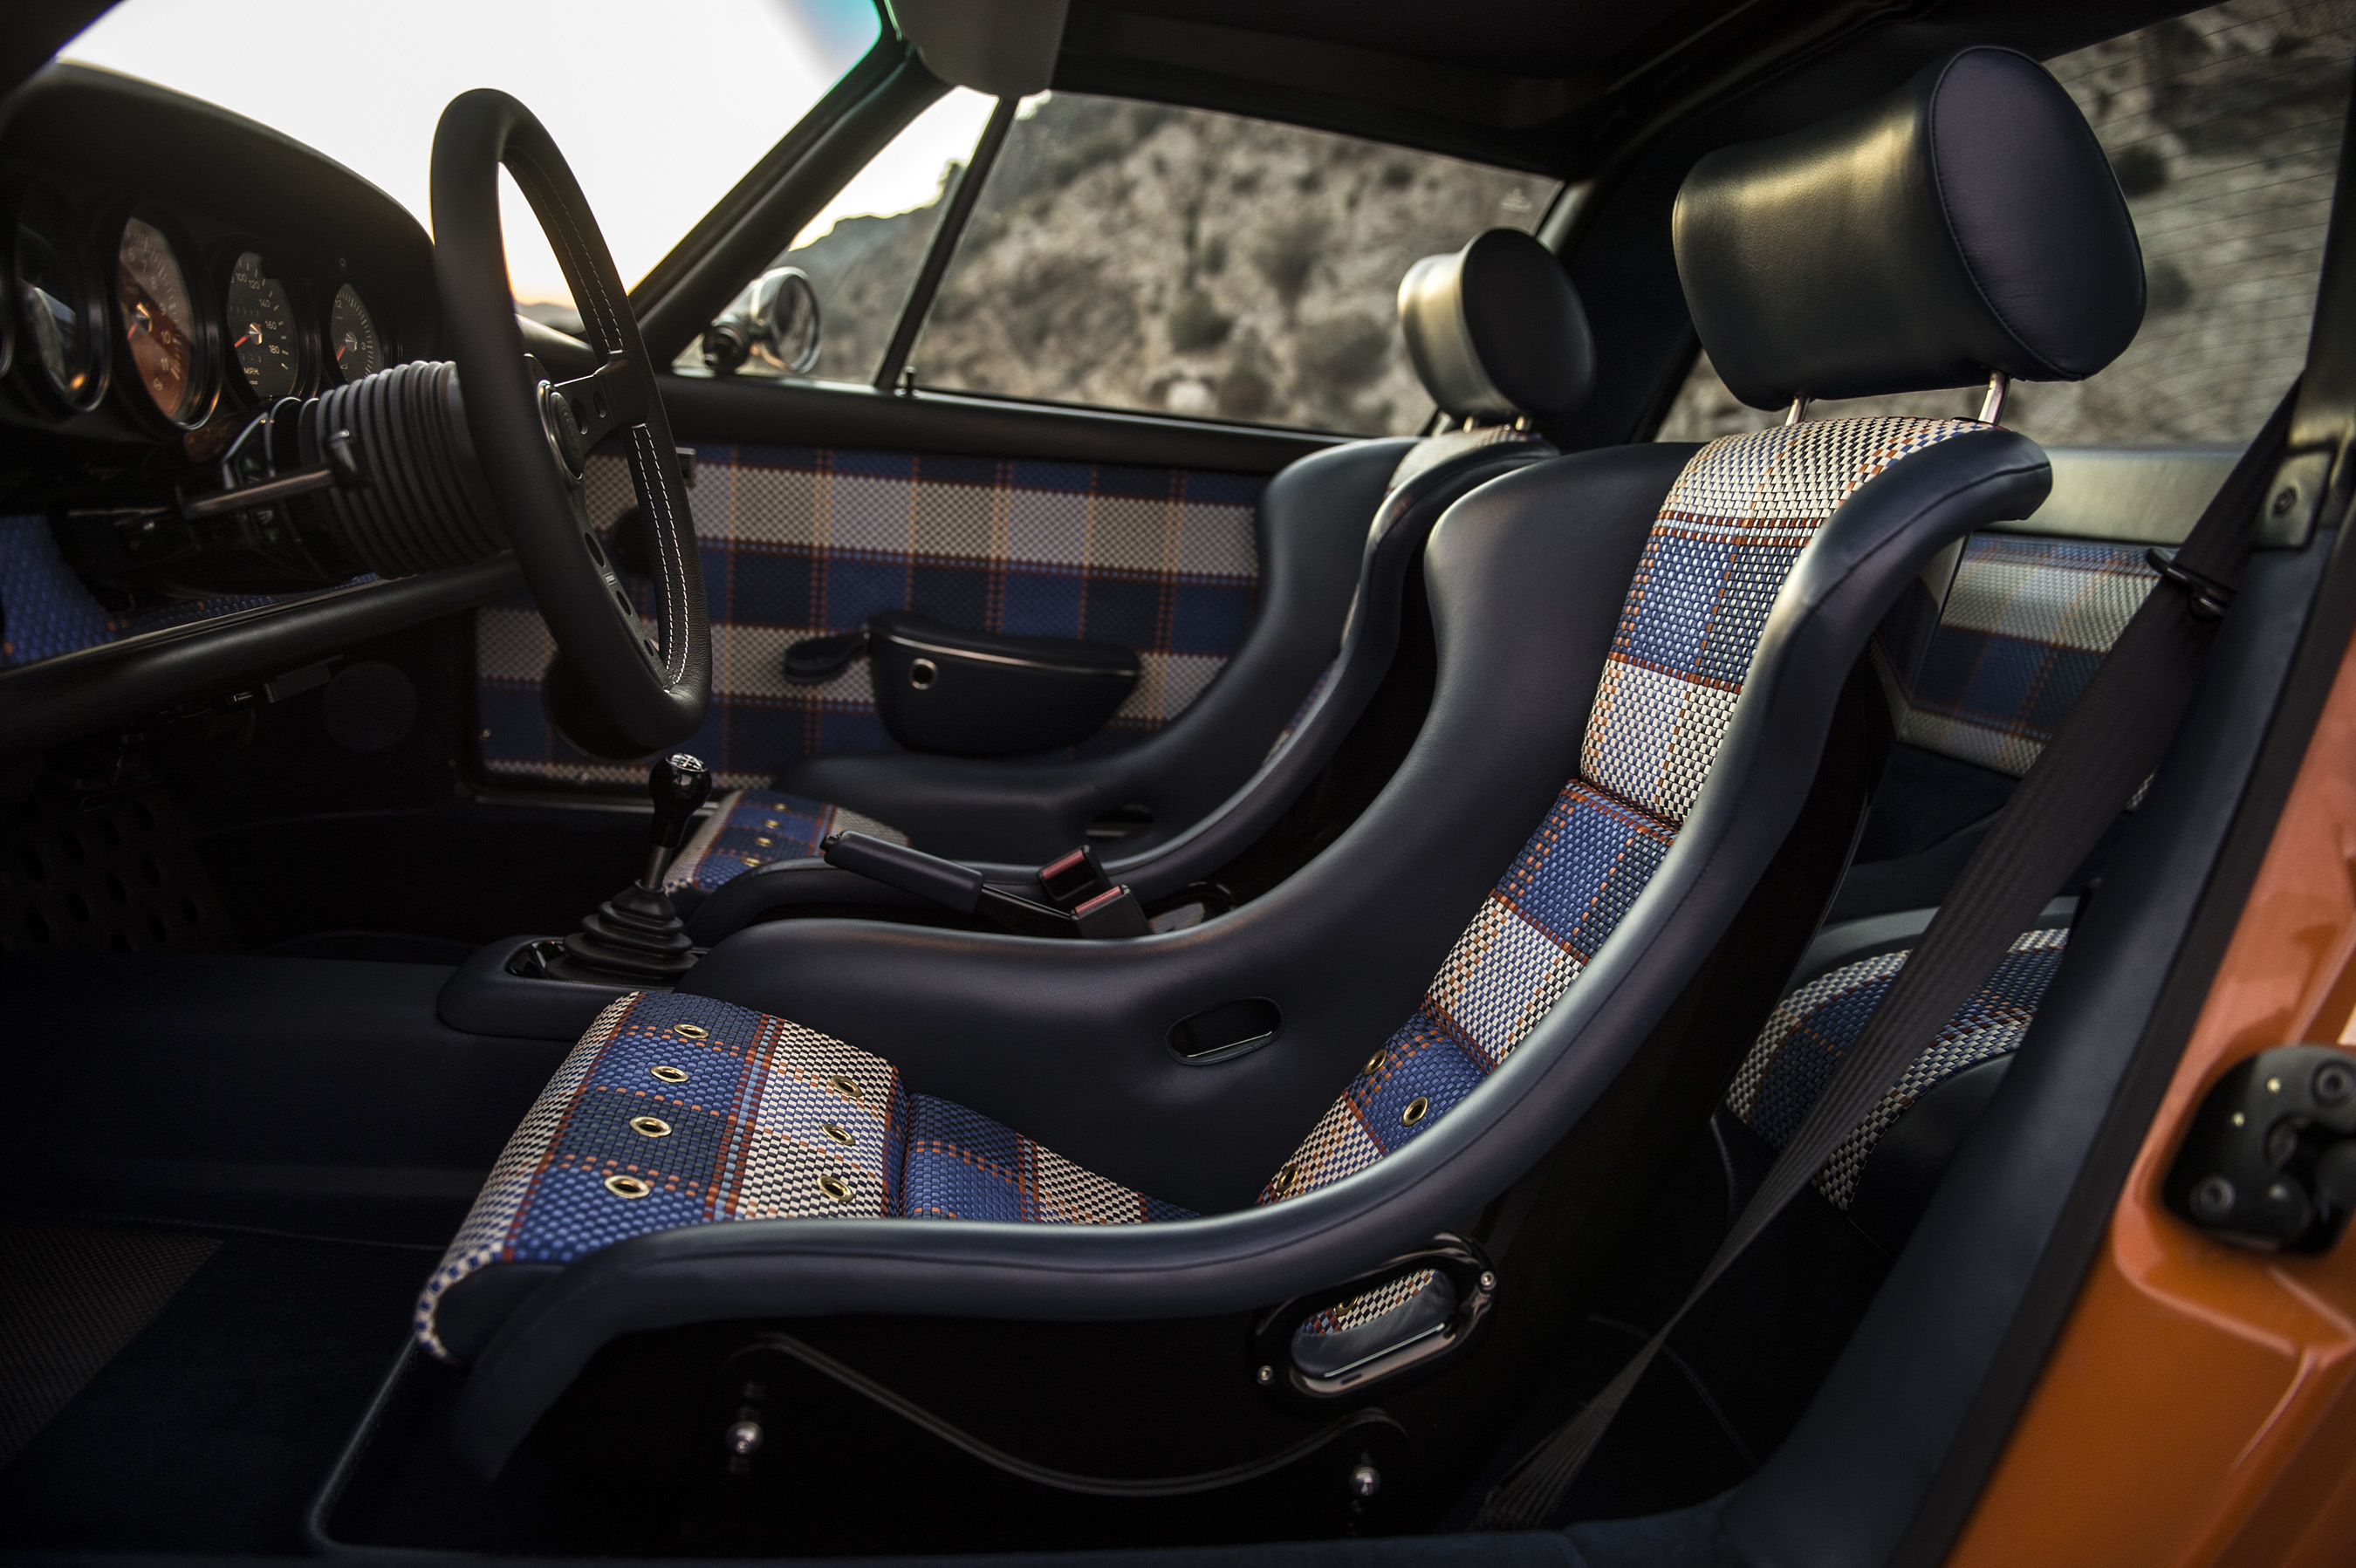 Incredibly bespoke 7-color 'Tyler Tartan' leather weave interior for 'Luxemburg' – with 2 oranges, 4 shades of blue and 1 cream – showcasing special wishes brought to life by Singer Vehicle Design.